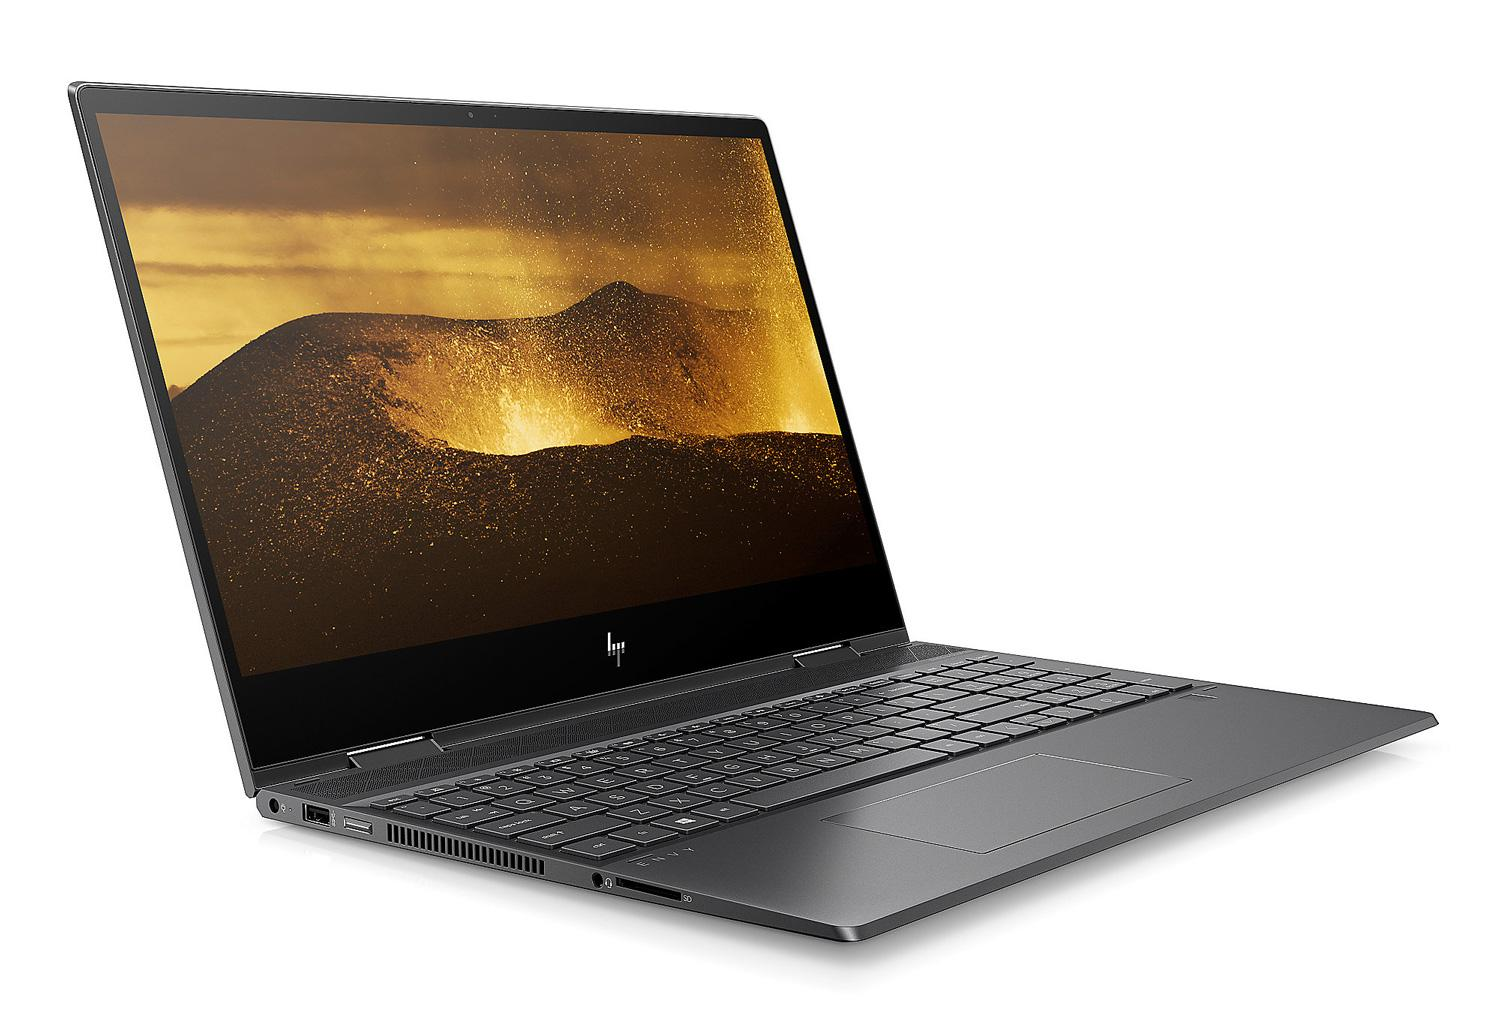 Ordinateur portable HP Envy x360 15-ds0004nf Noir cendre tactile - AMD Ryzen 5 - photo 2